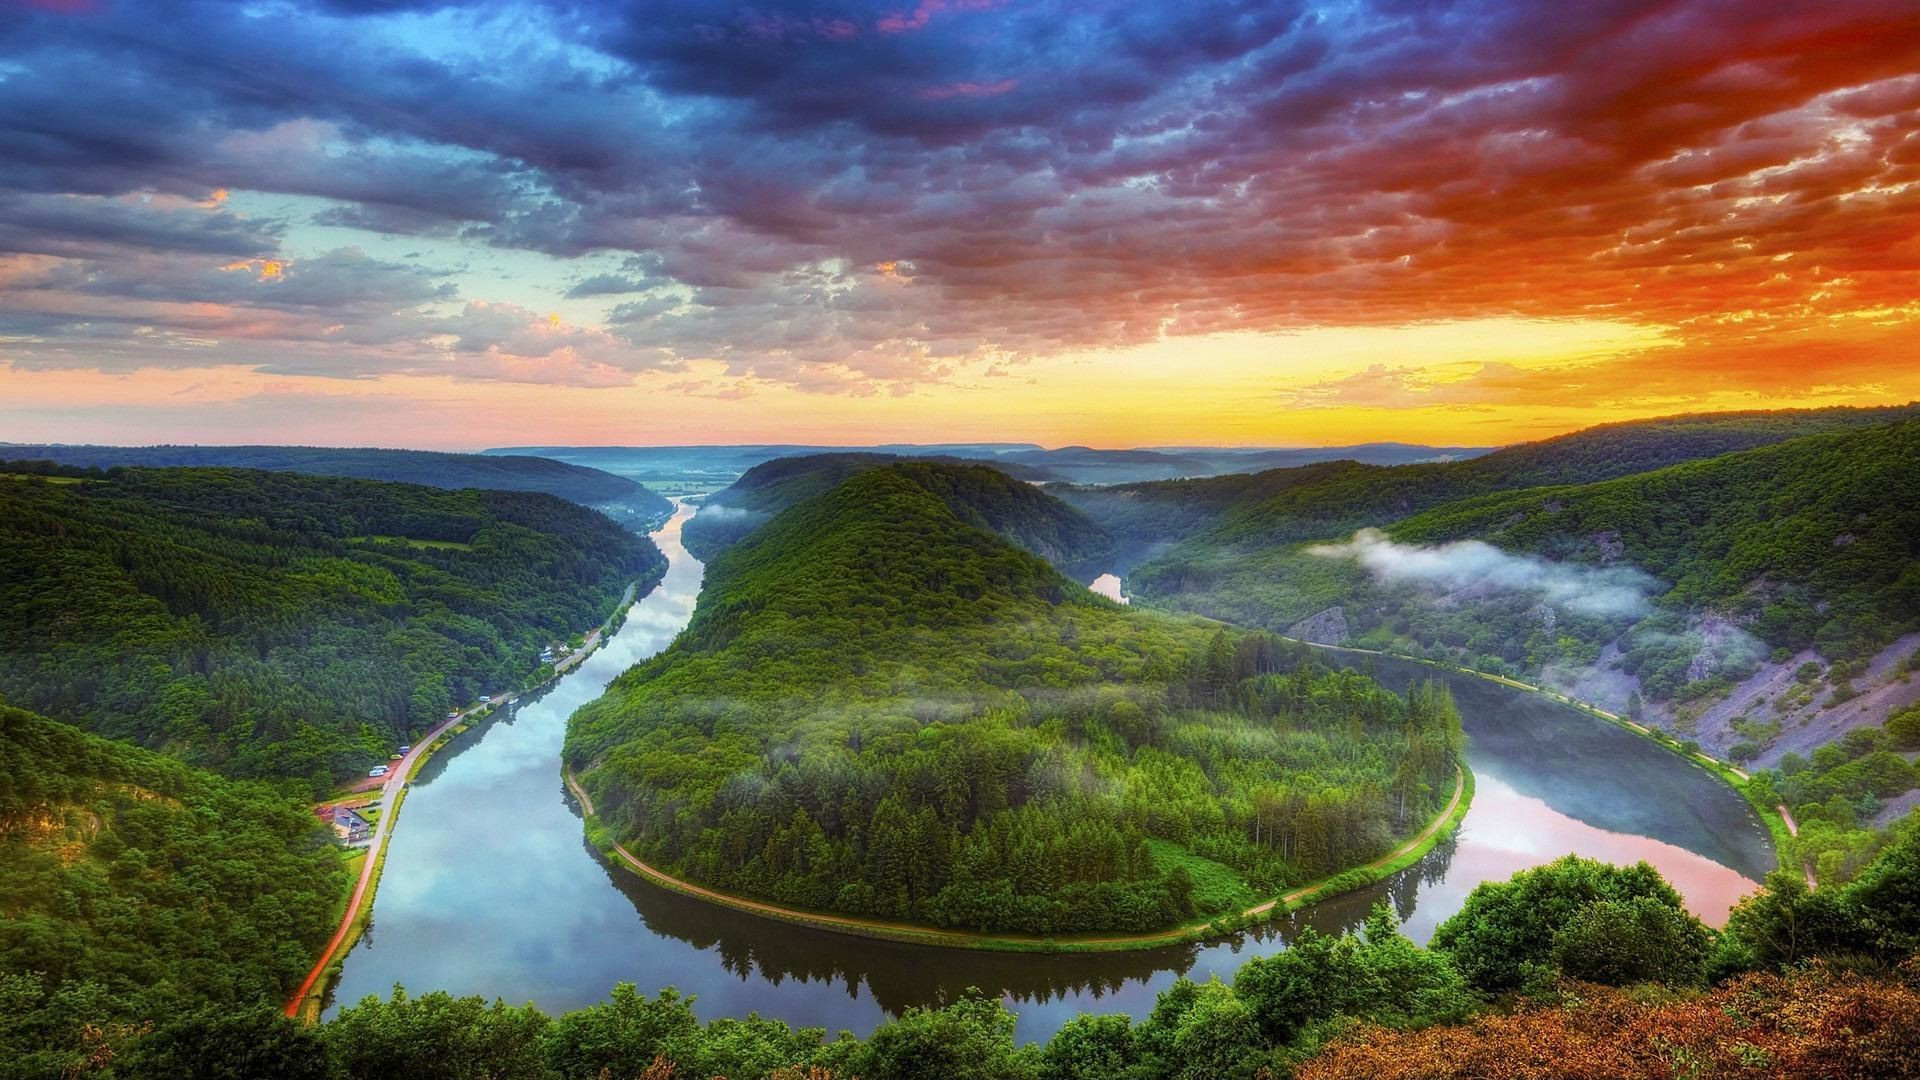 rivers ponds and streams water landscape travel nature outdoors river mountain scenic sky lake